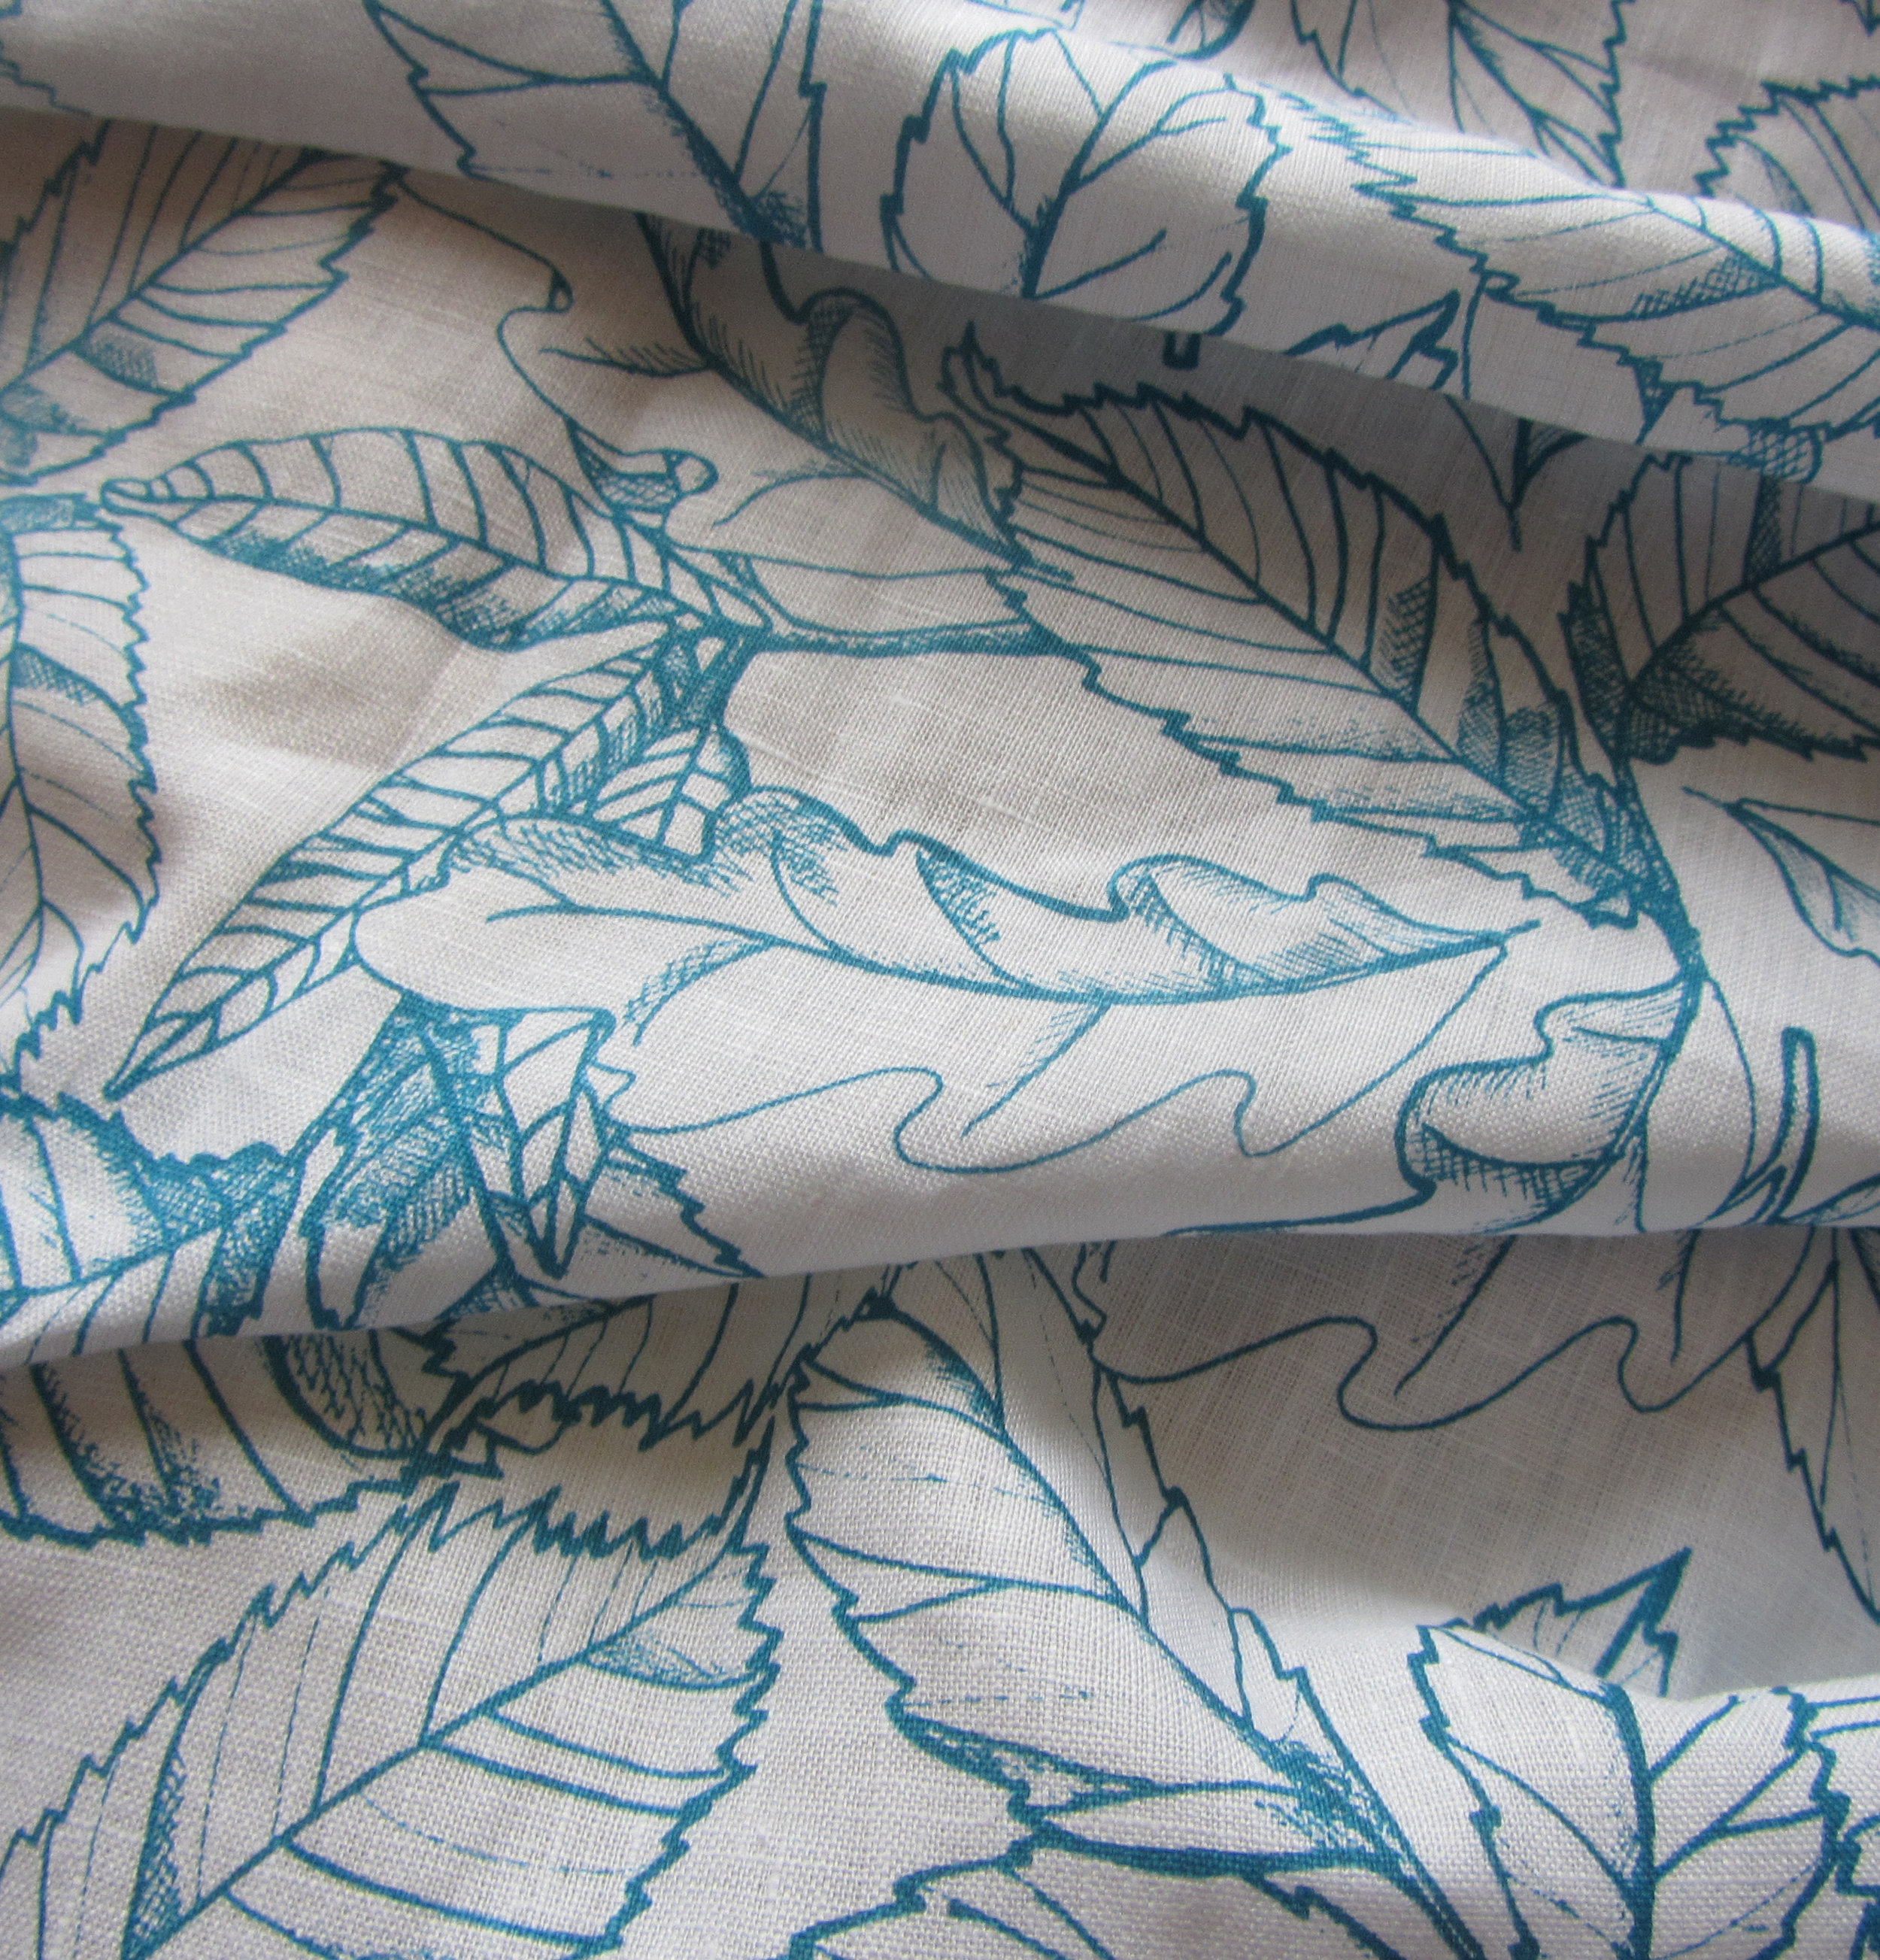 Prints come in many colourways. Detail on Irish linen